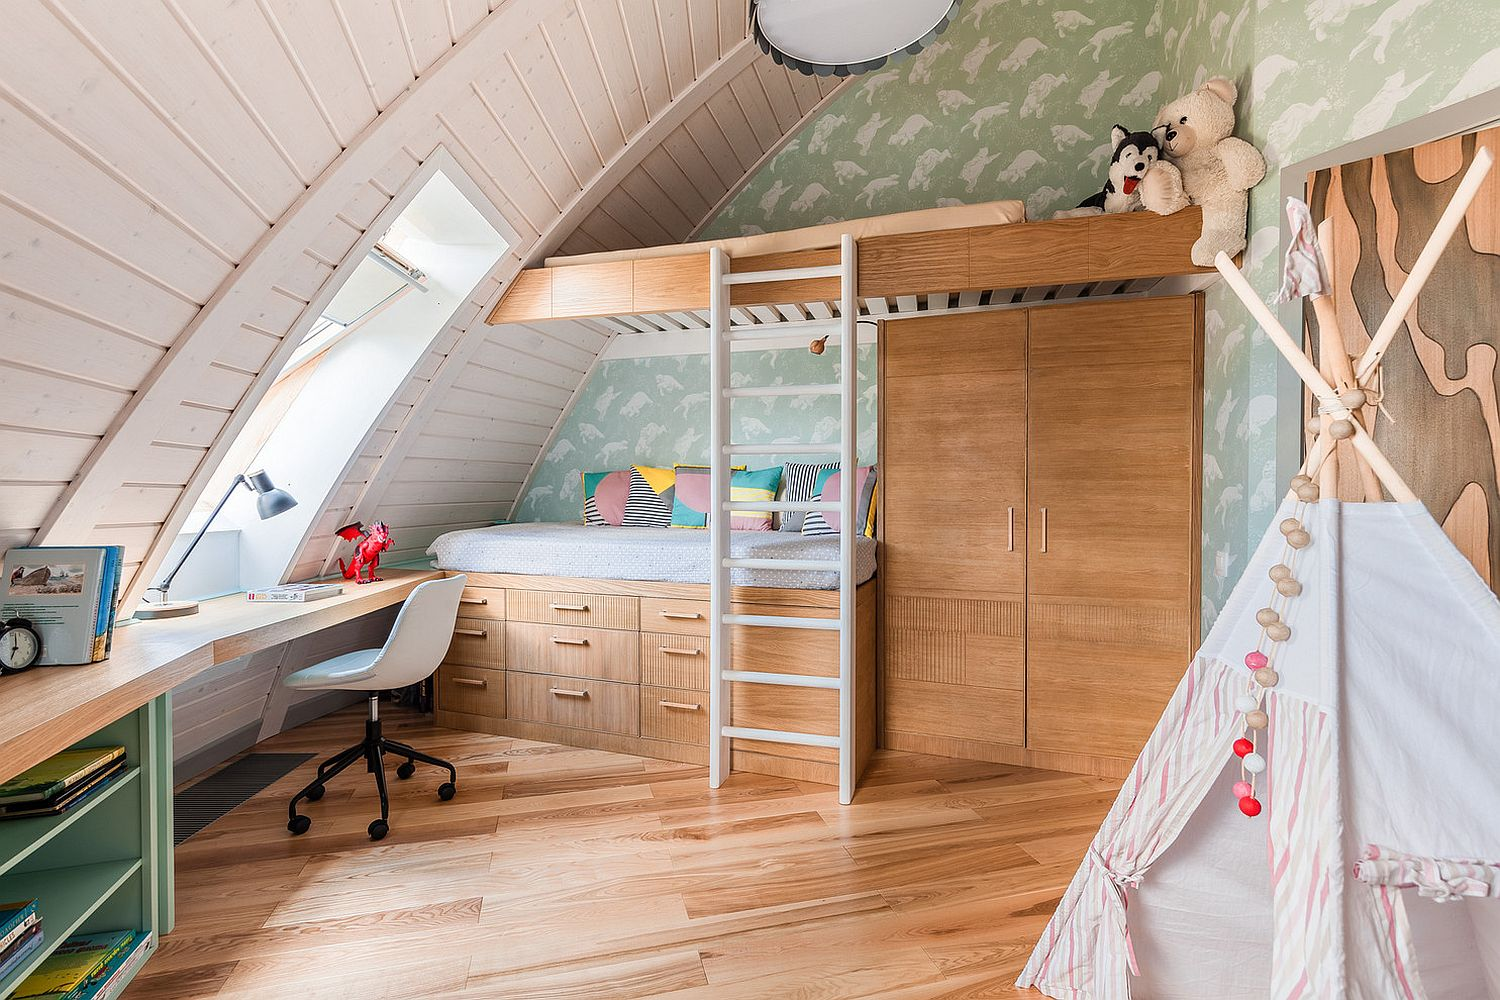 Attic-bedroom-with-bunk-bed-that-provides-plenty-of-storage-options